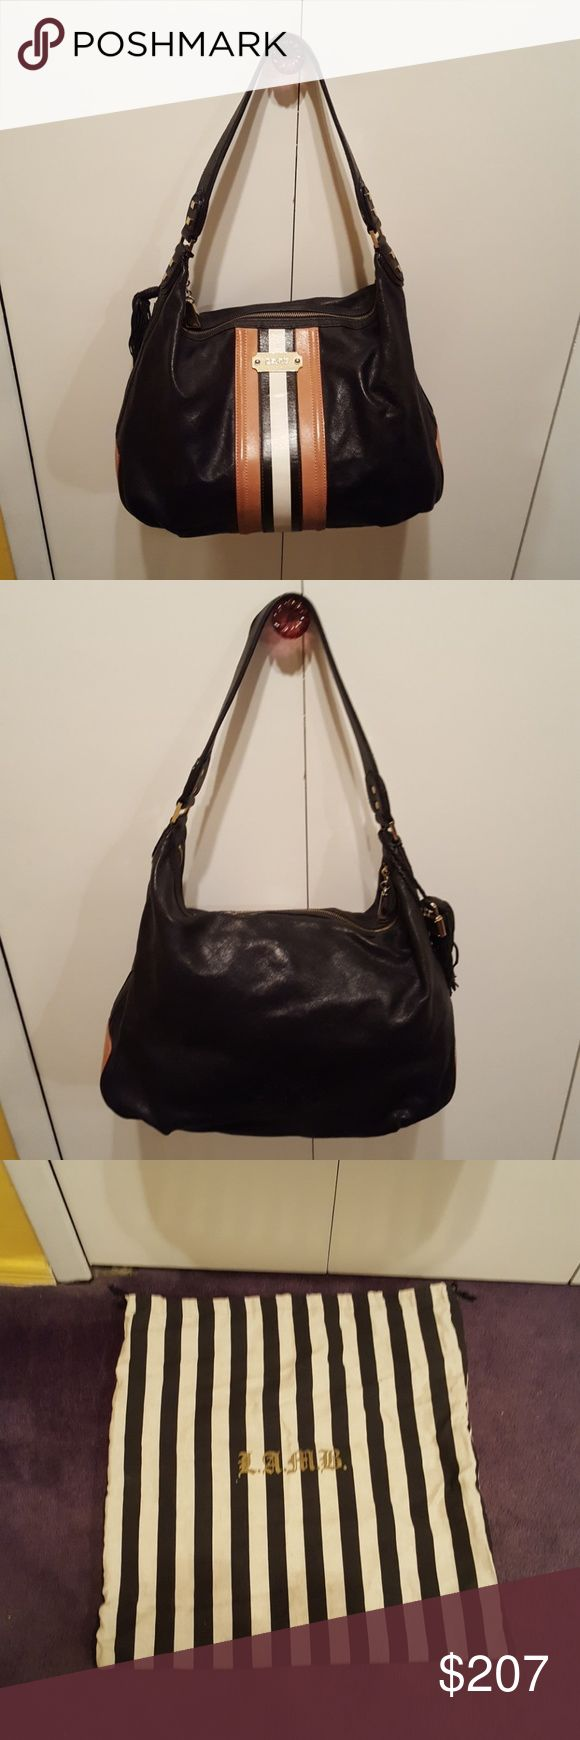 Lamb bag by GWEN STEFANI Leather bag like new . Nail polish stain in the inside zipper pocket picture shown above . Dust bag included LAMB  Bags Shoulder Bags